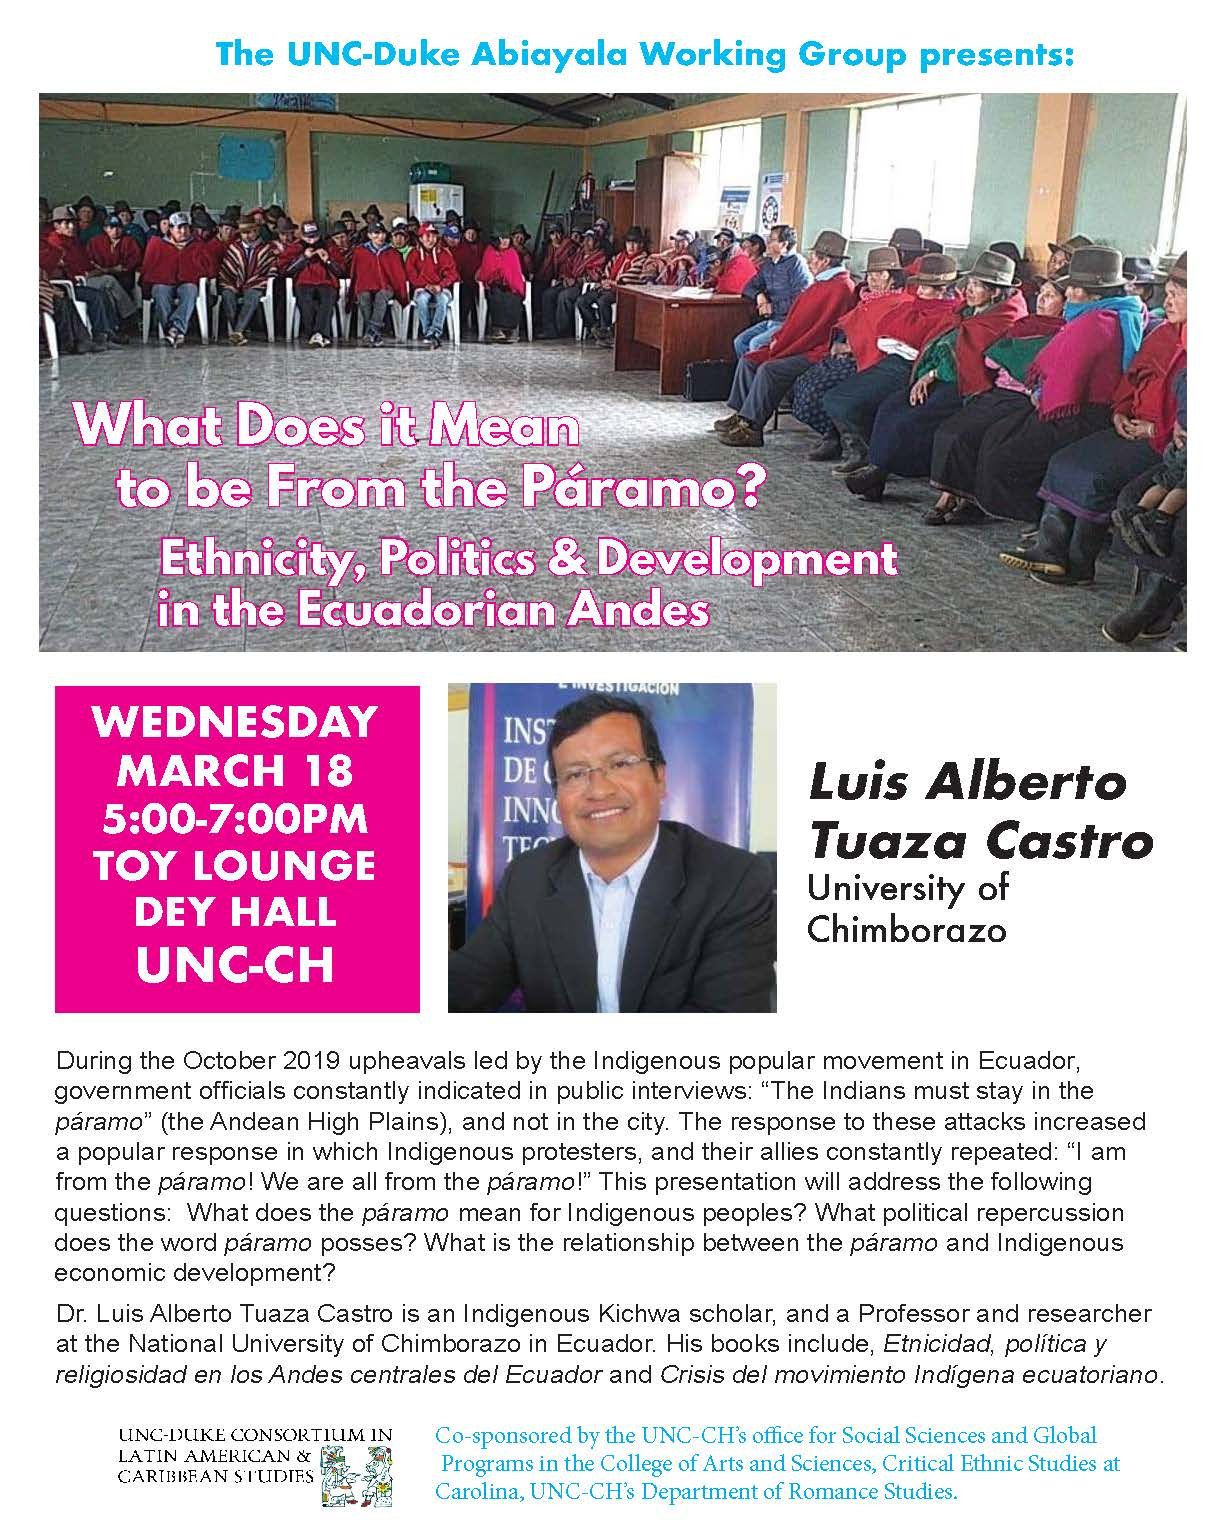 What Does it Mean to be From the Páramo? Ethnicity, Politics & Development in the Ecuadorian Andes